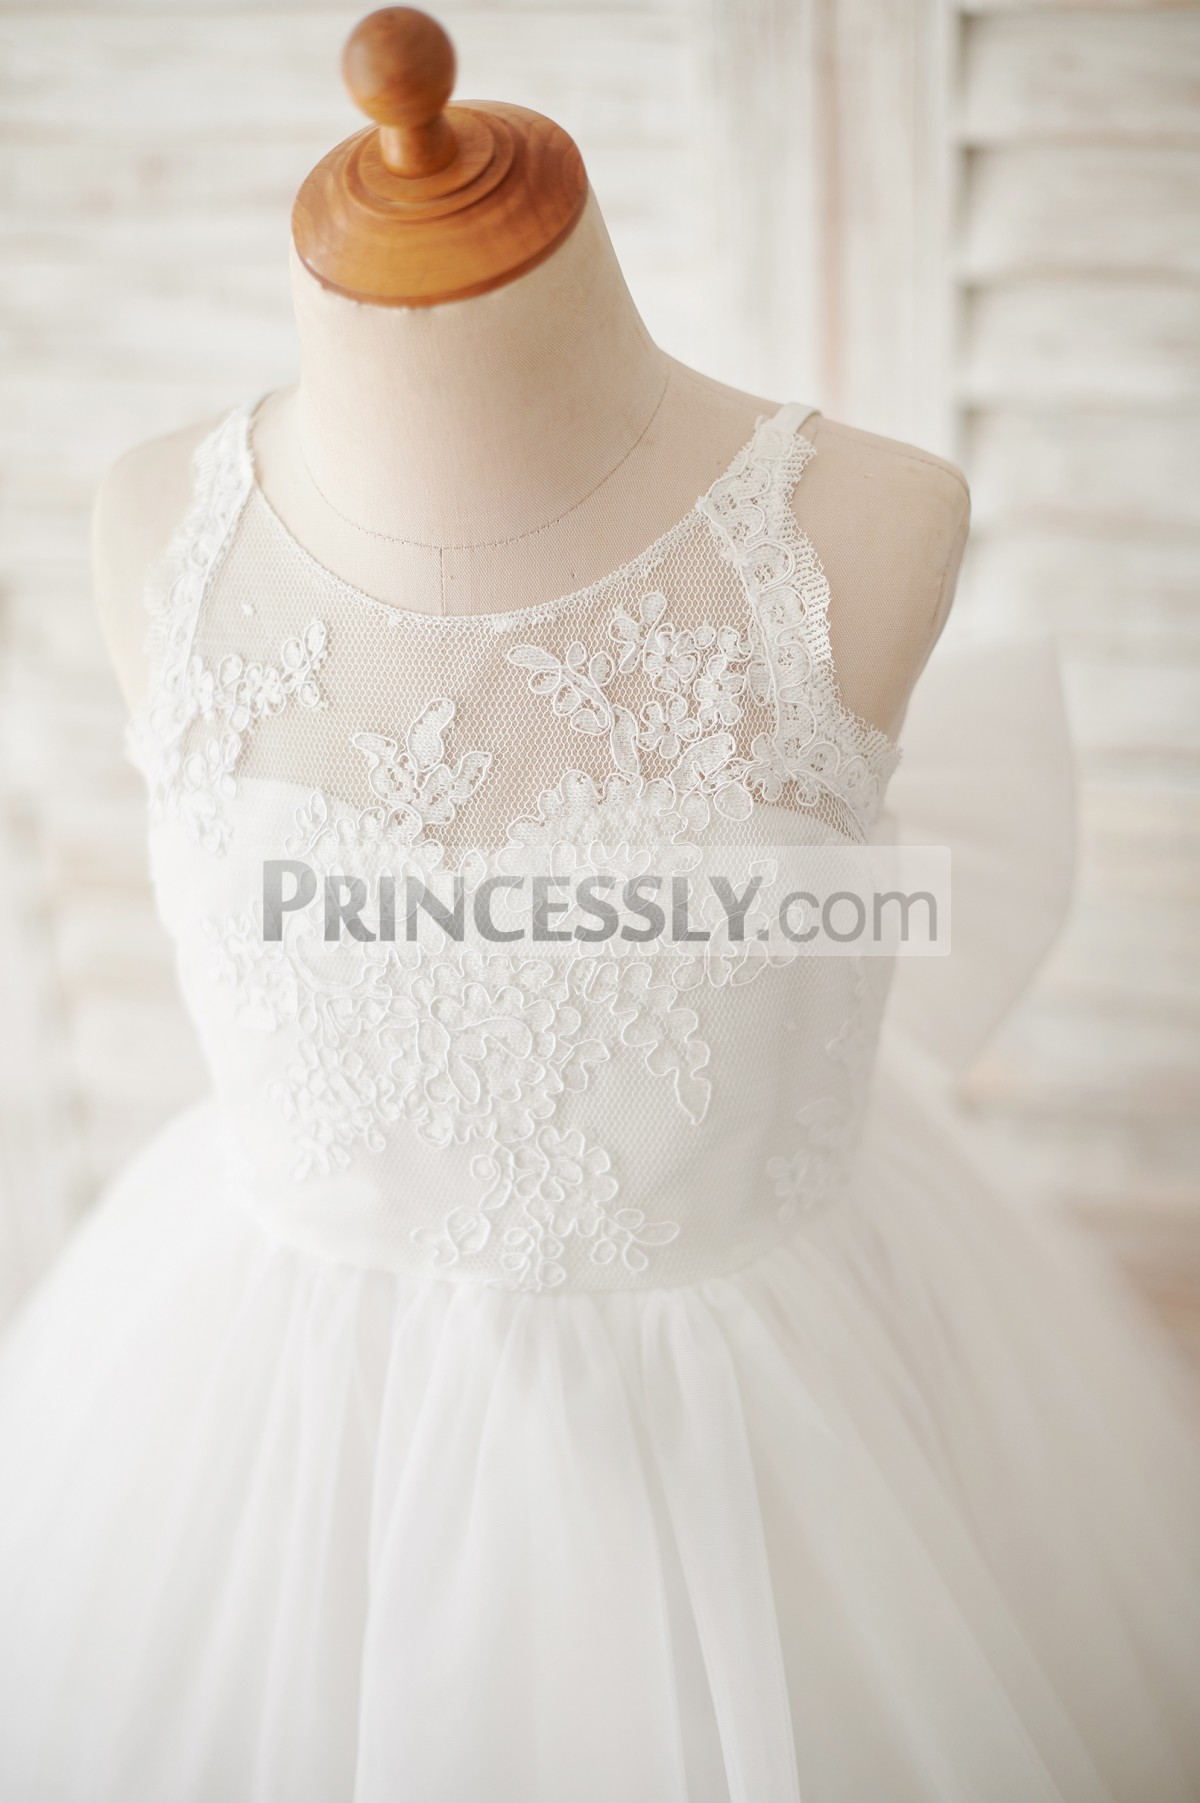 Lace overlay sweetheart lining bodice